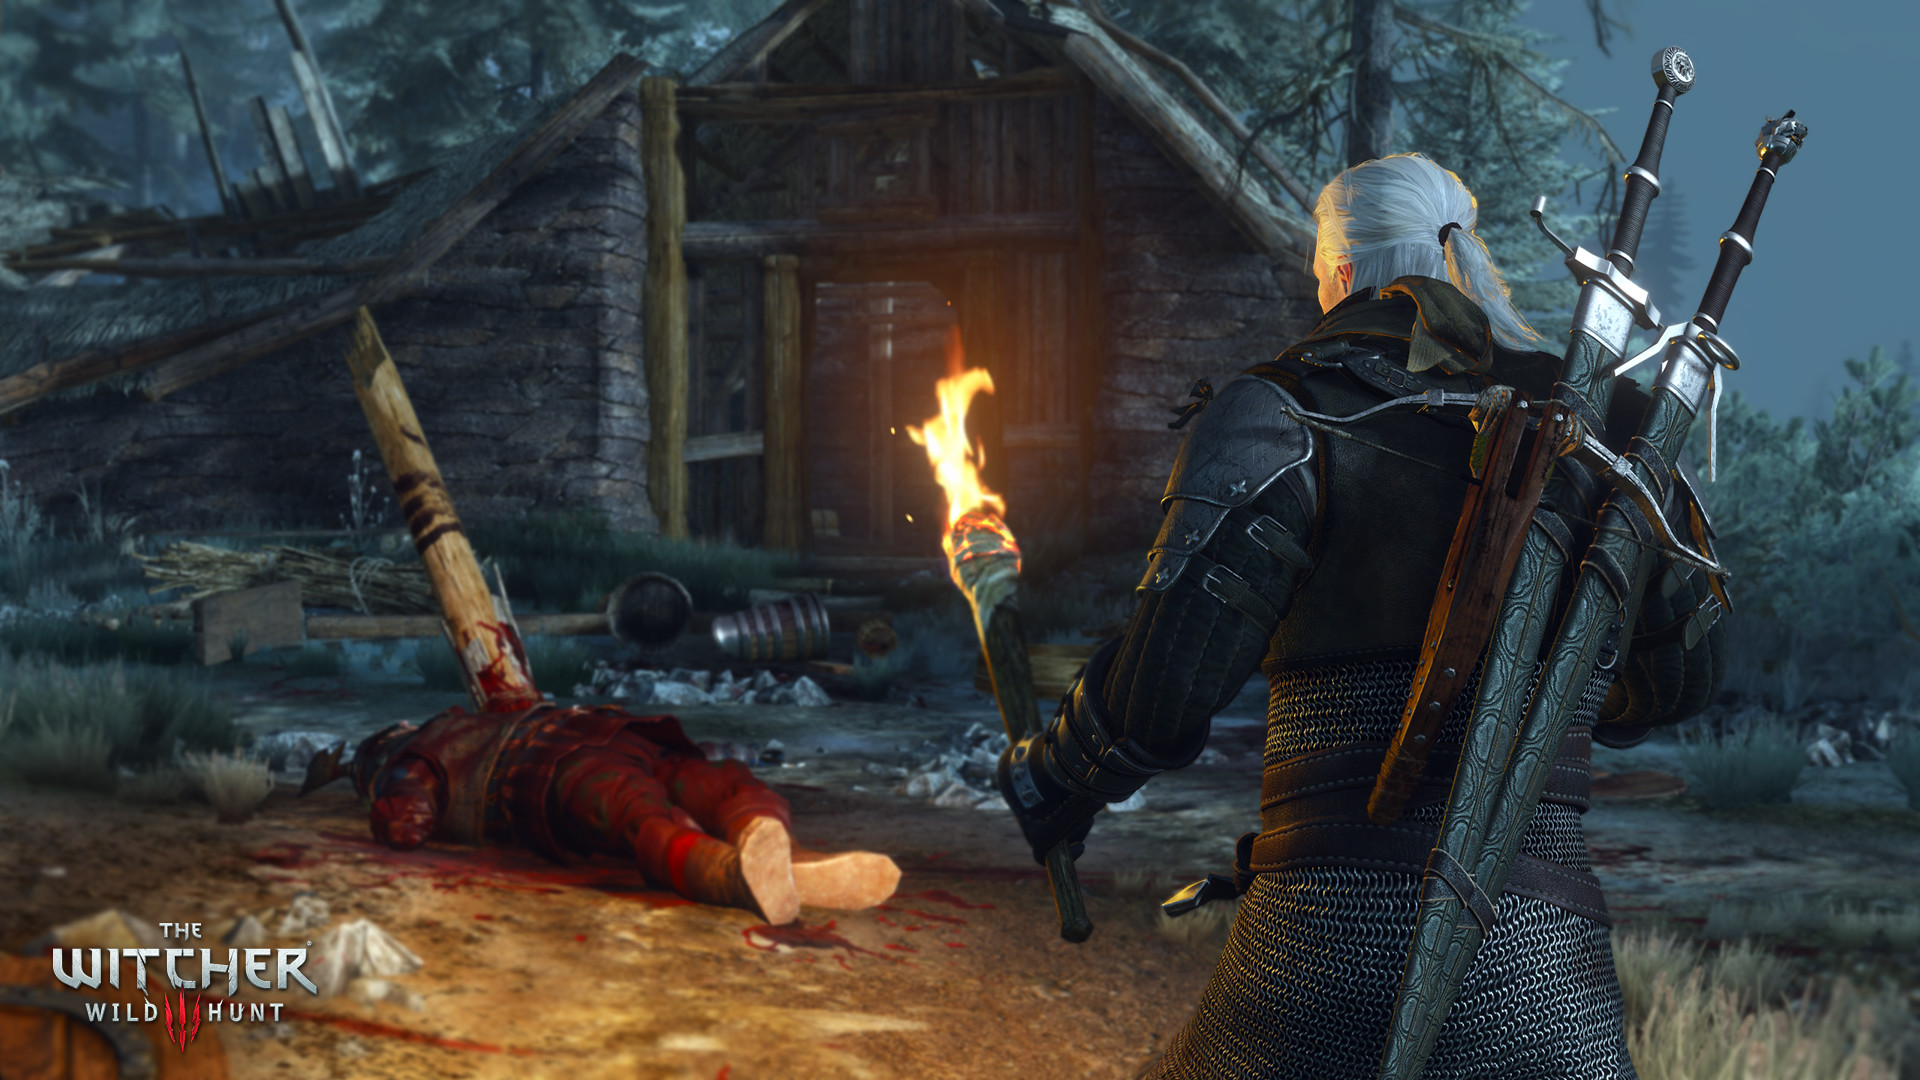 download the witcher 3 wild hunt game of the year edition include all dlc and update global cd key latest update version game for pc 2017 free ps4 playstation 3 xbox one 360 complex iso rar copiapop diskokosmiko